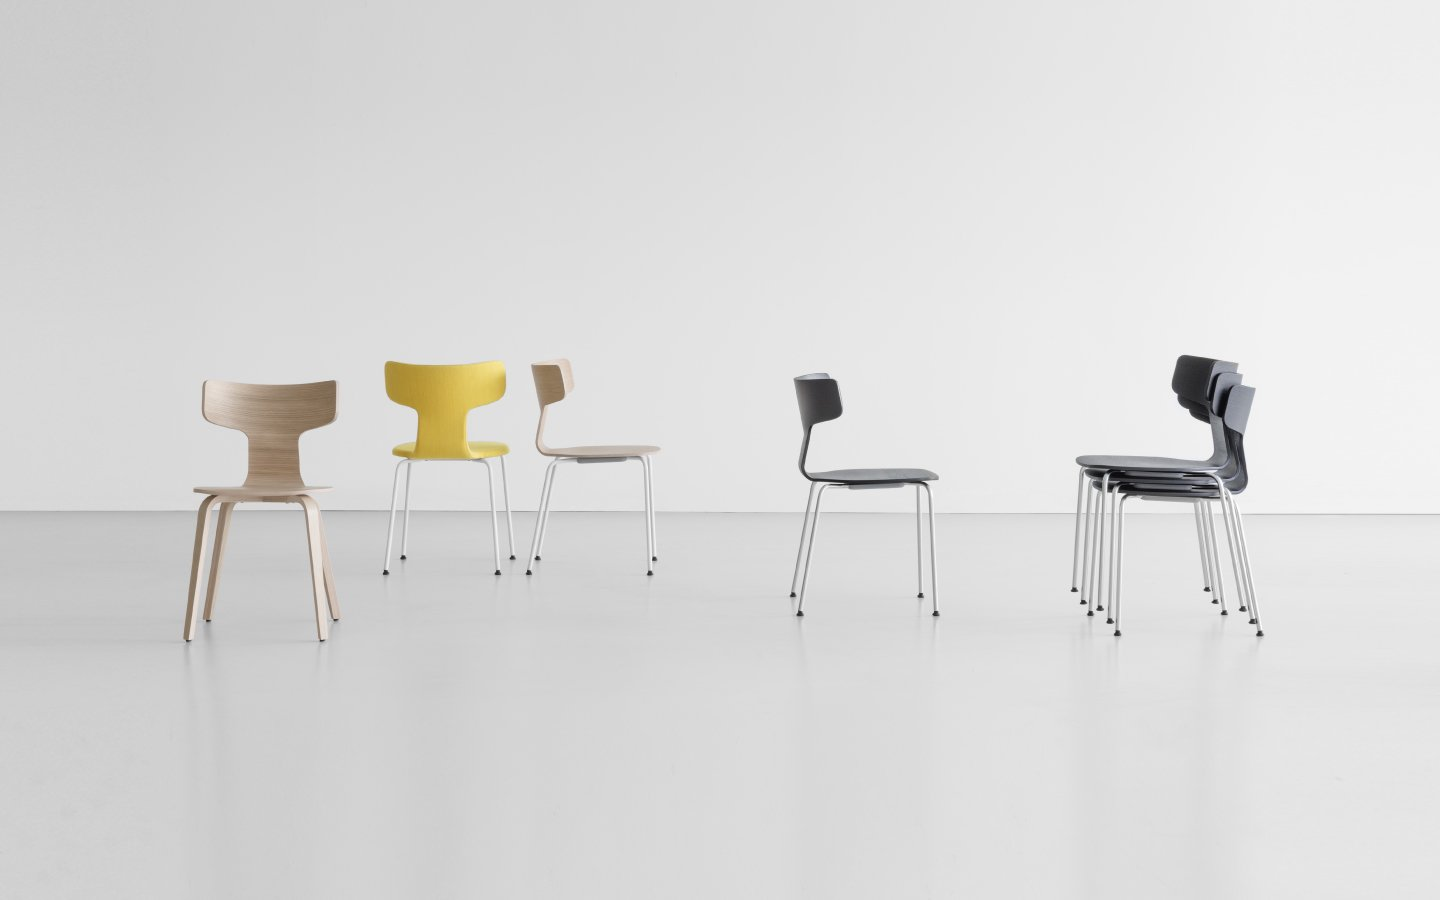 Fedra Chair from lapalma, designed by Leonardo Rossano